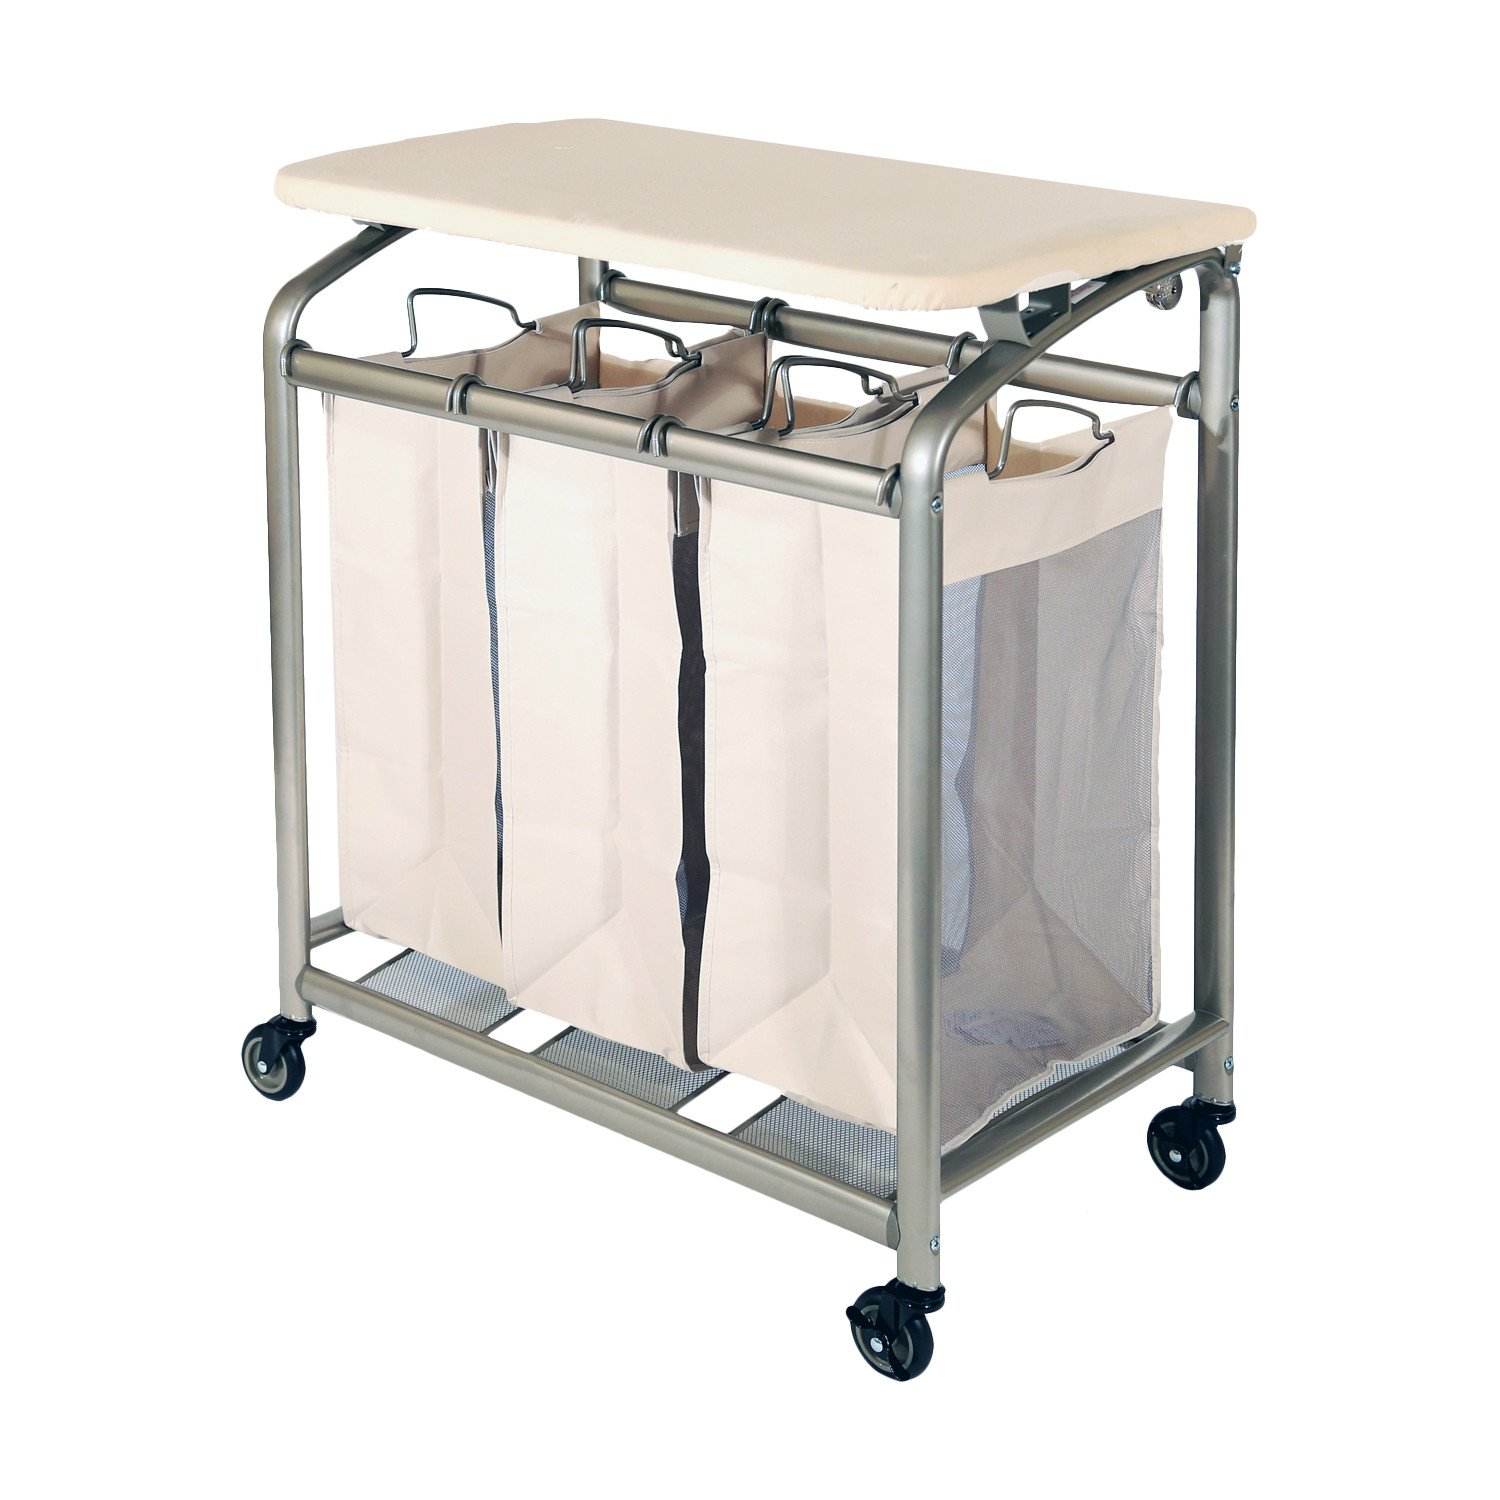 3 Bag Versatile and Durable Laundry Sorter with Folding Table